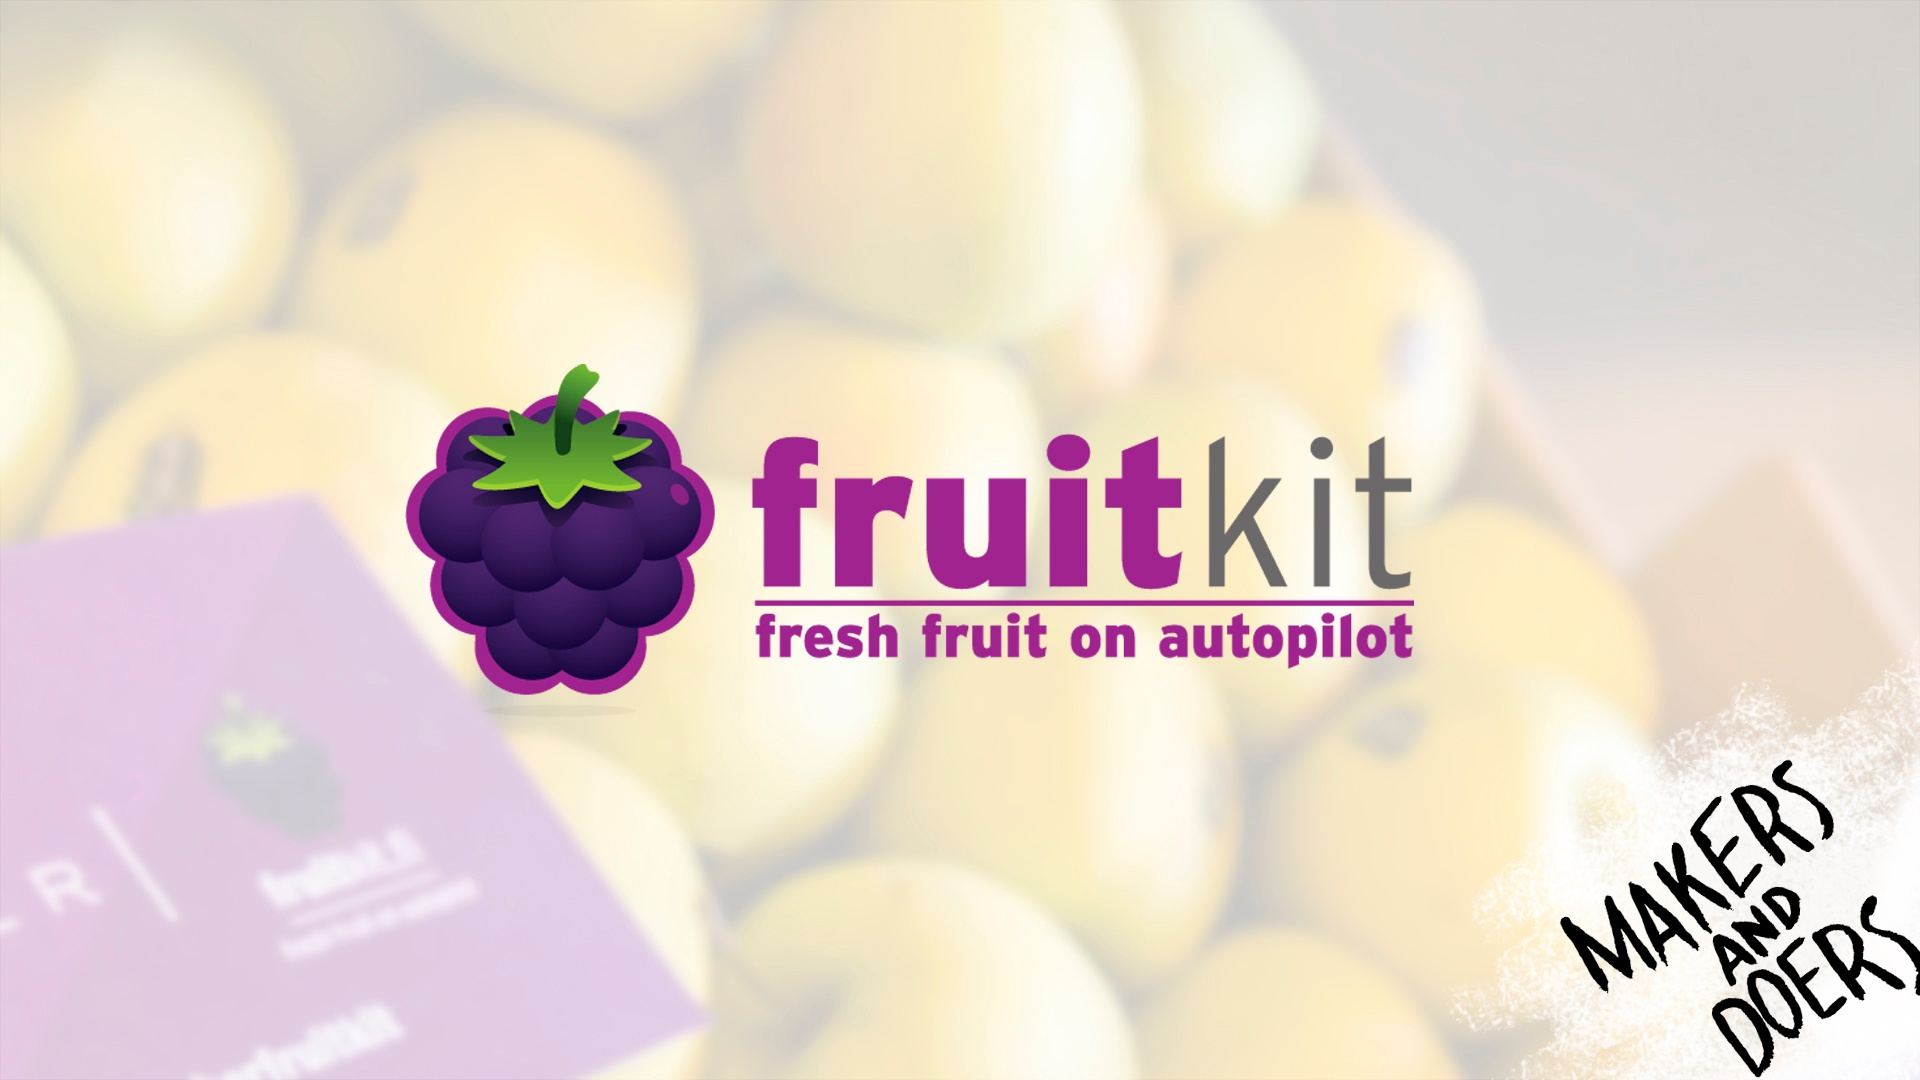 Fruitkit – the need for better fruit